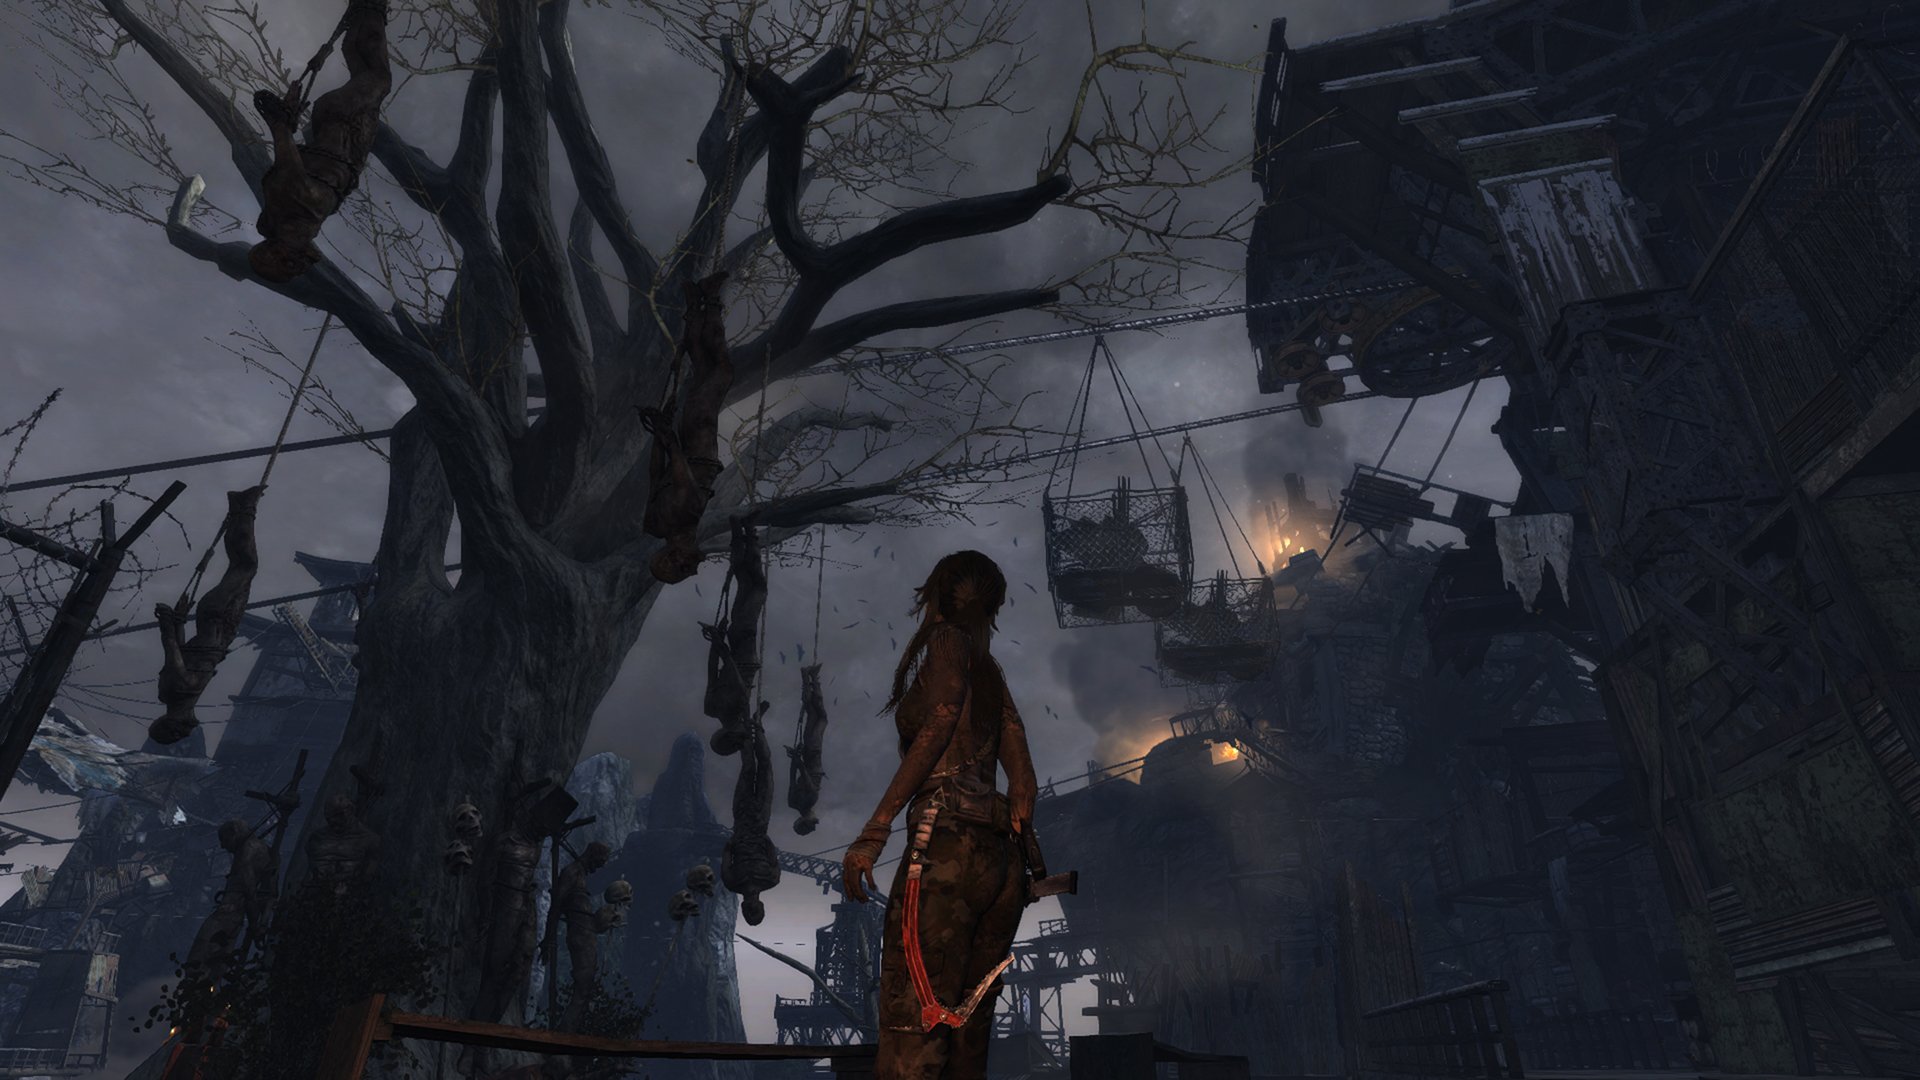 Lara Croft and corpses hanging from a tree.